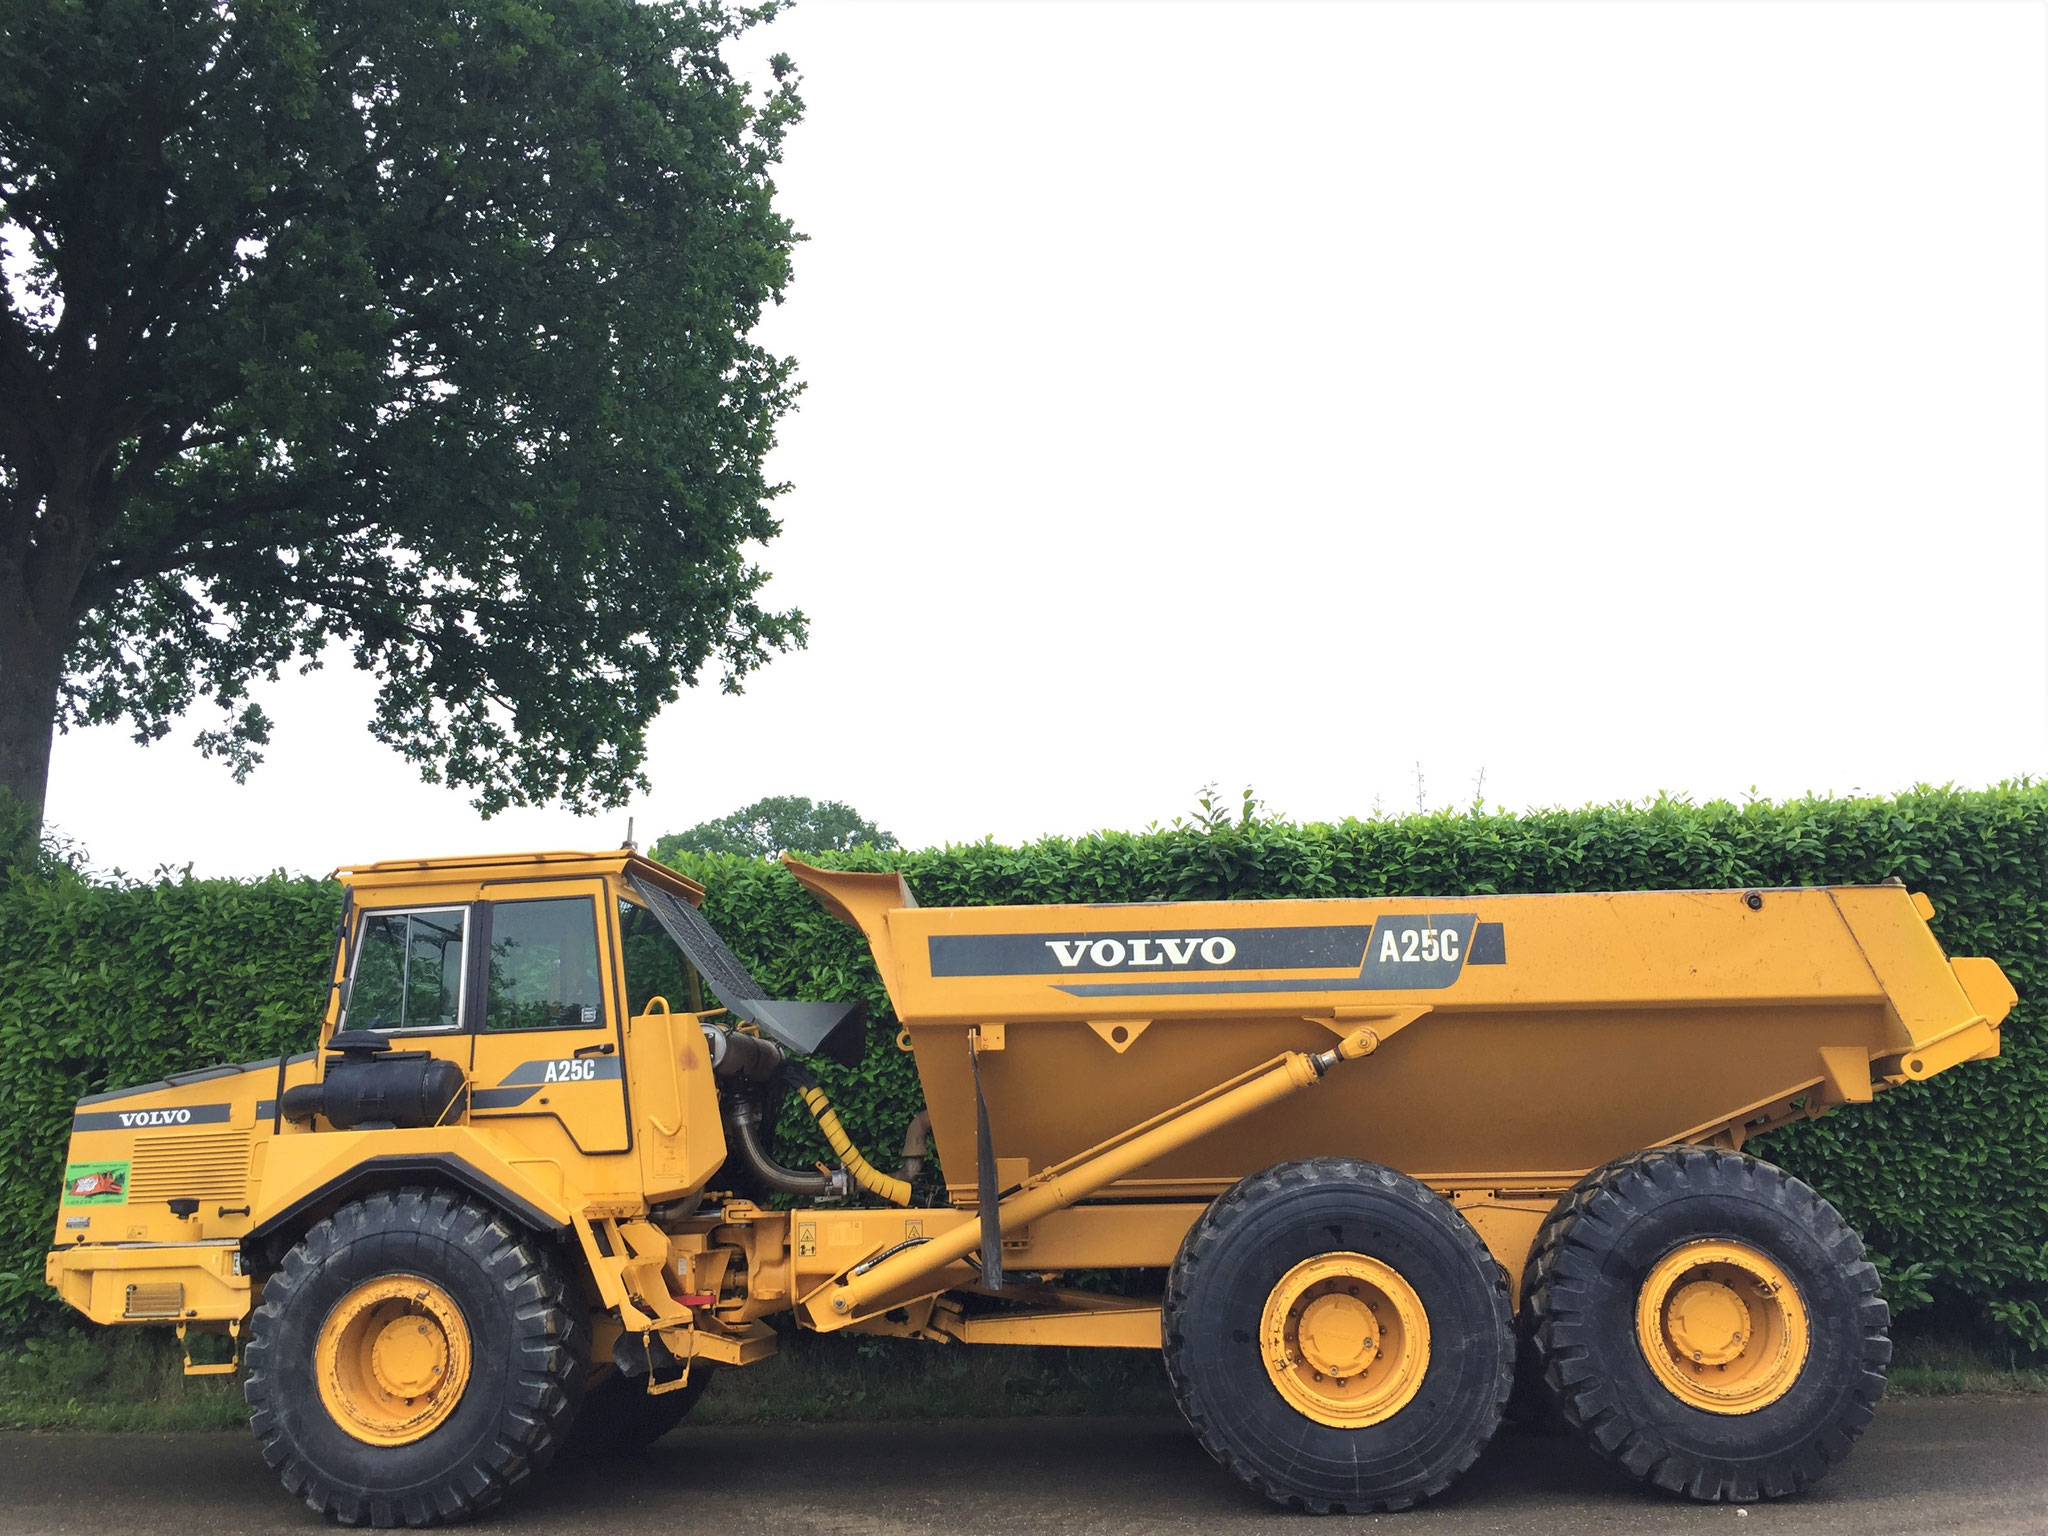 Tombereau Volvo A25